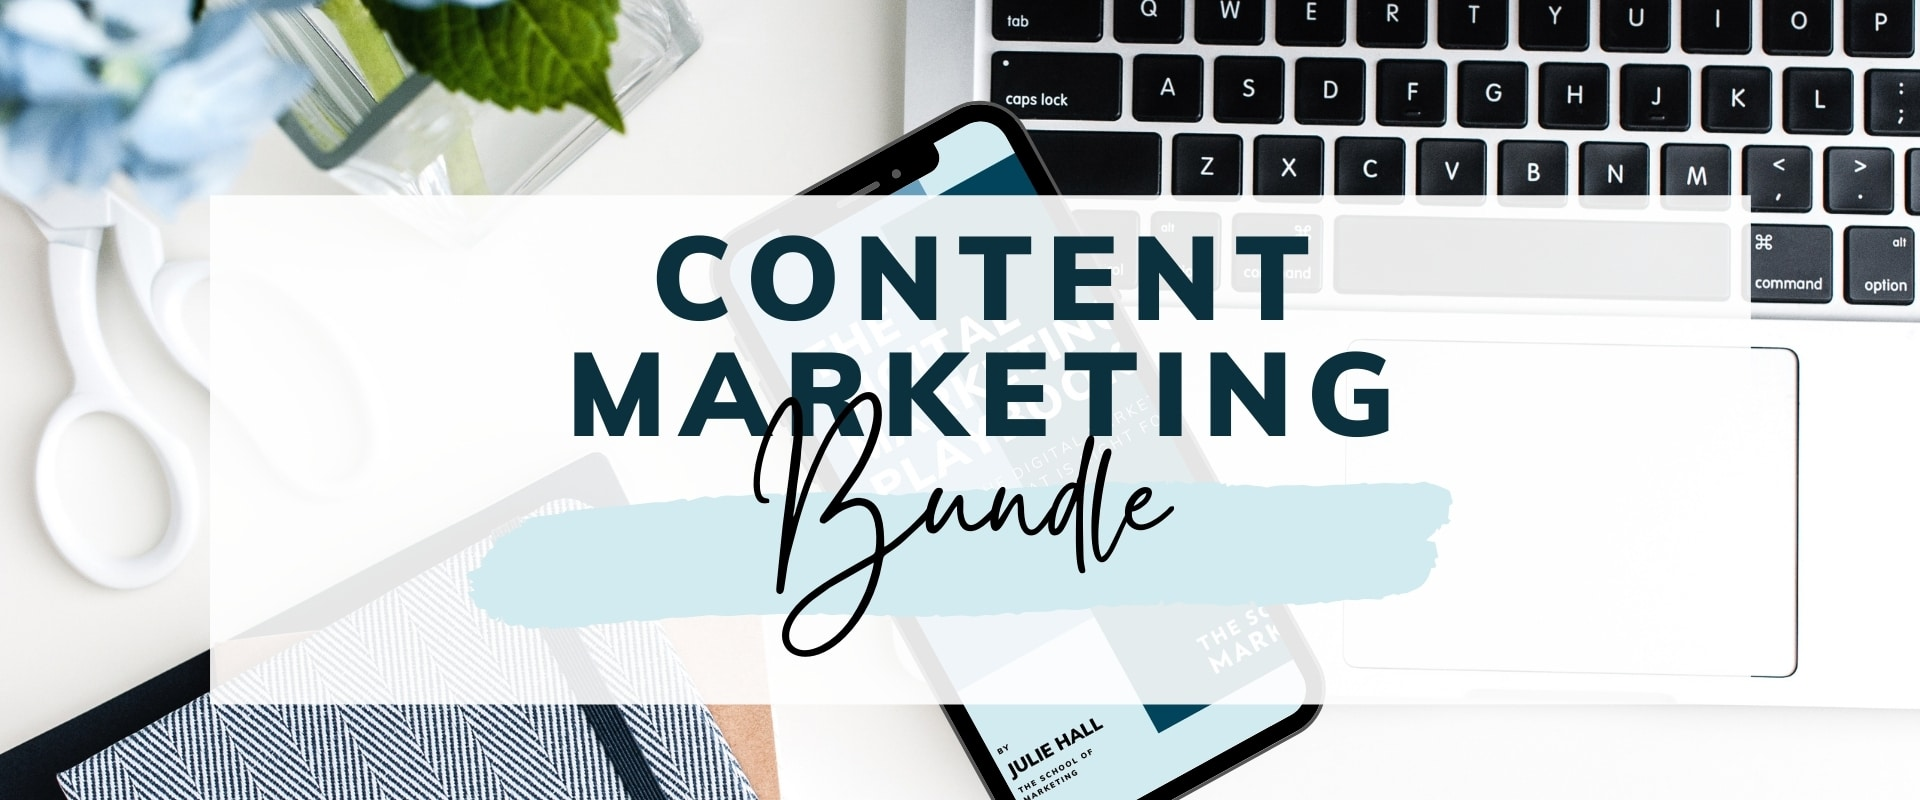 Content Marketing bundle